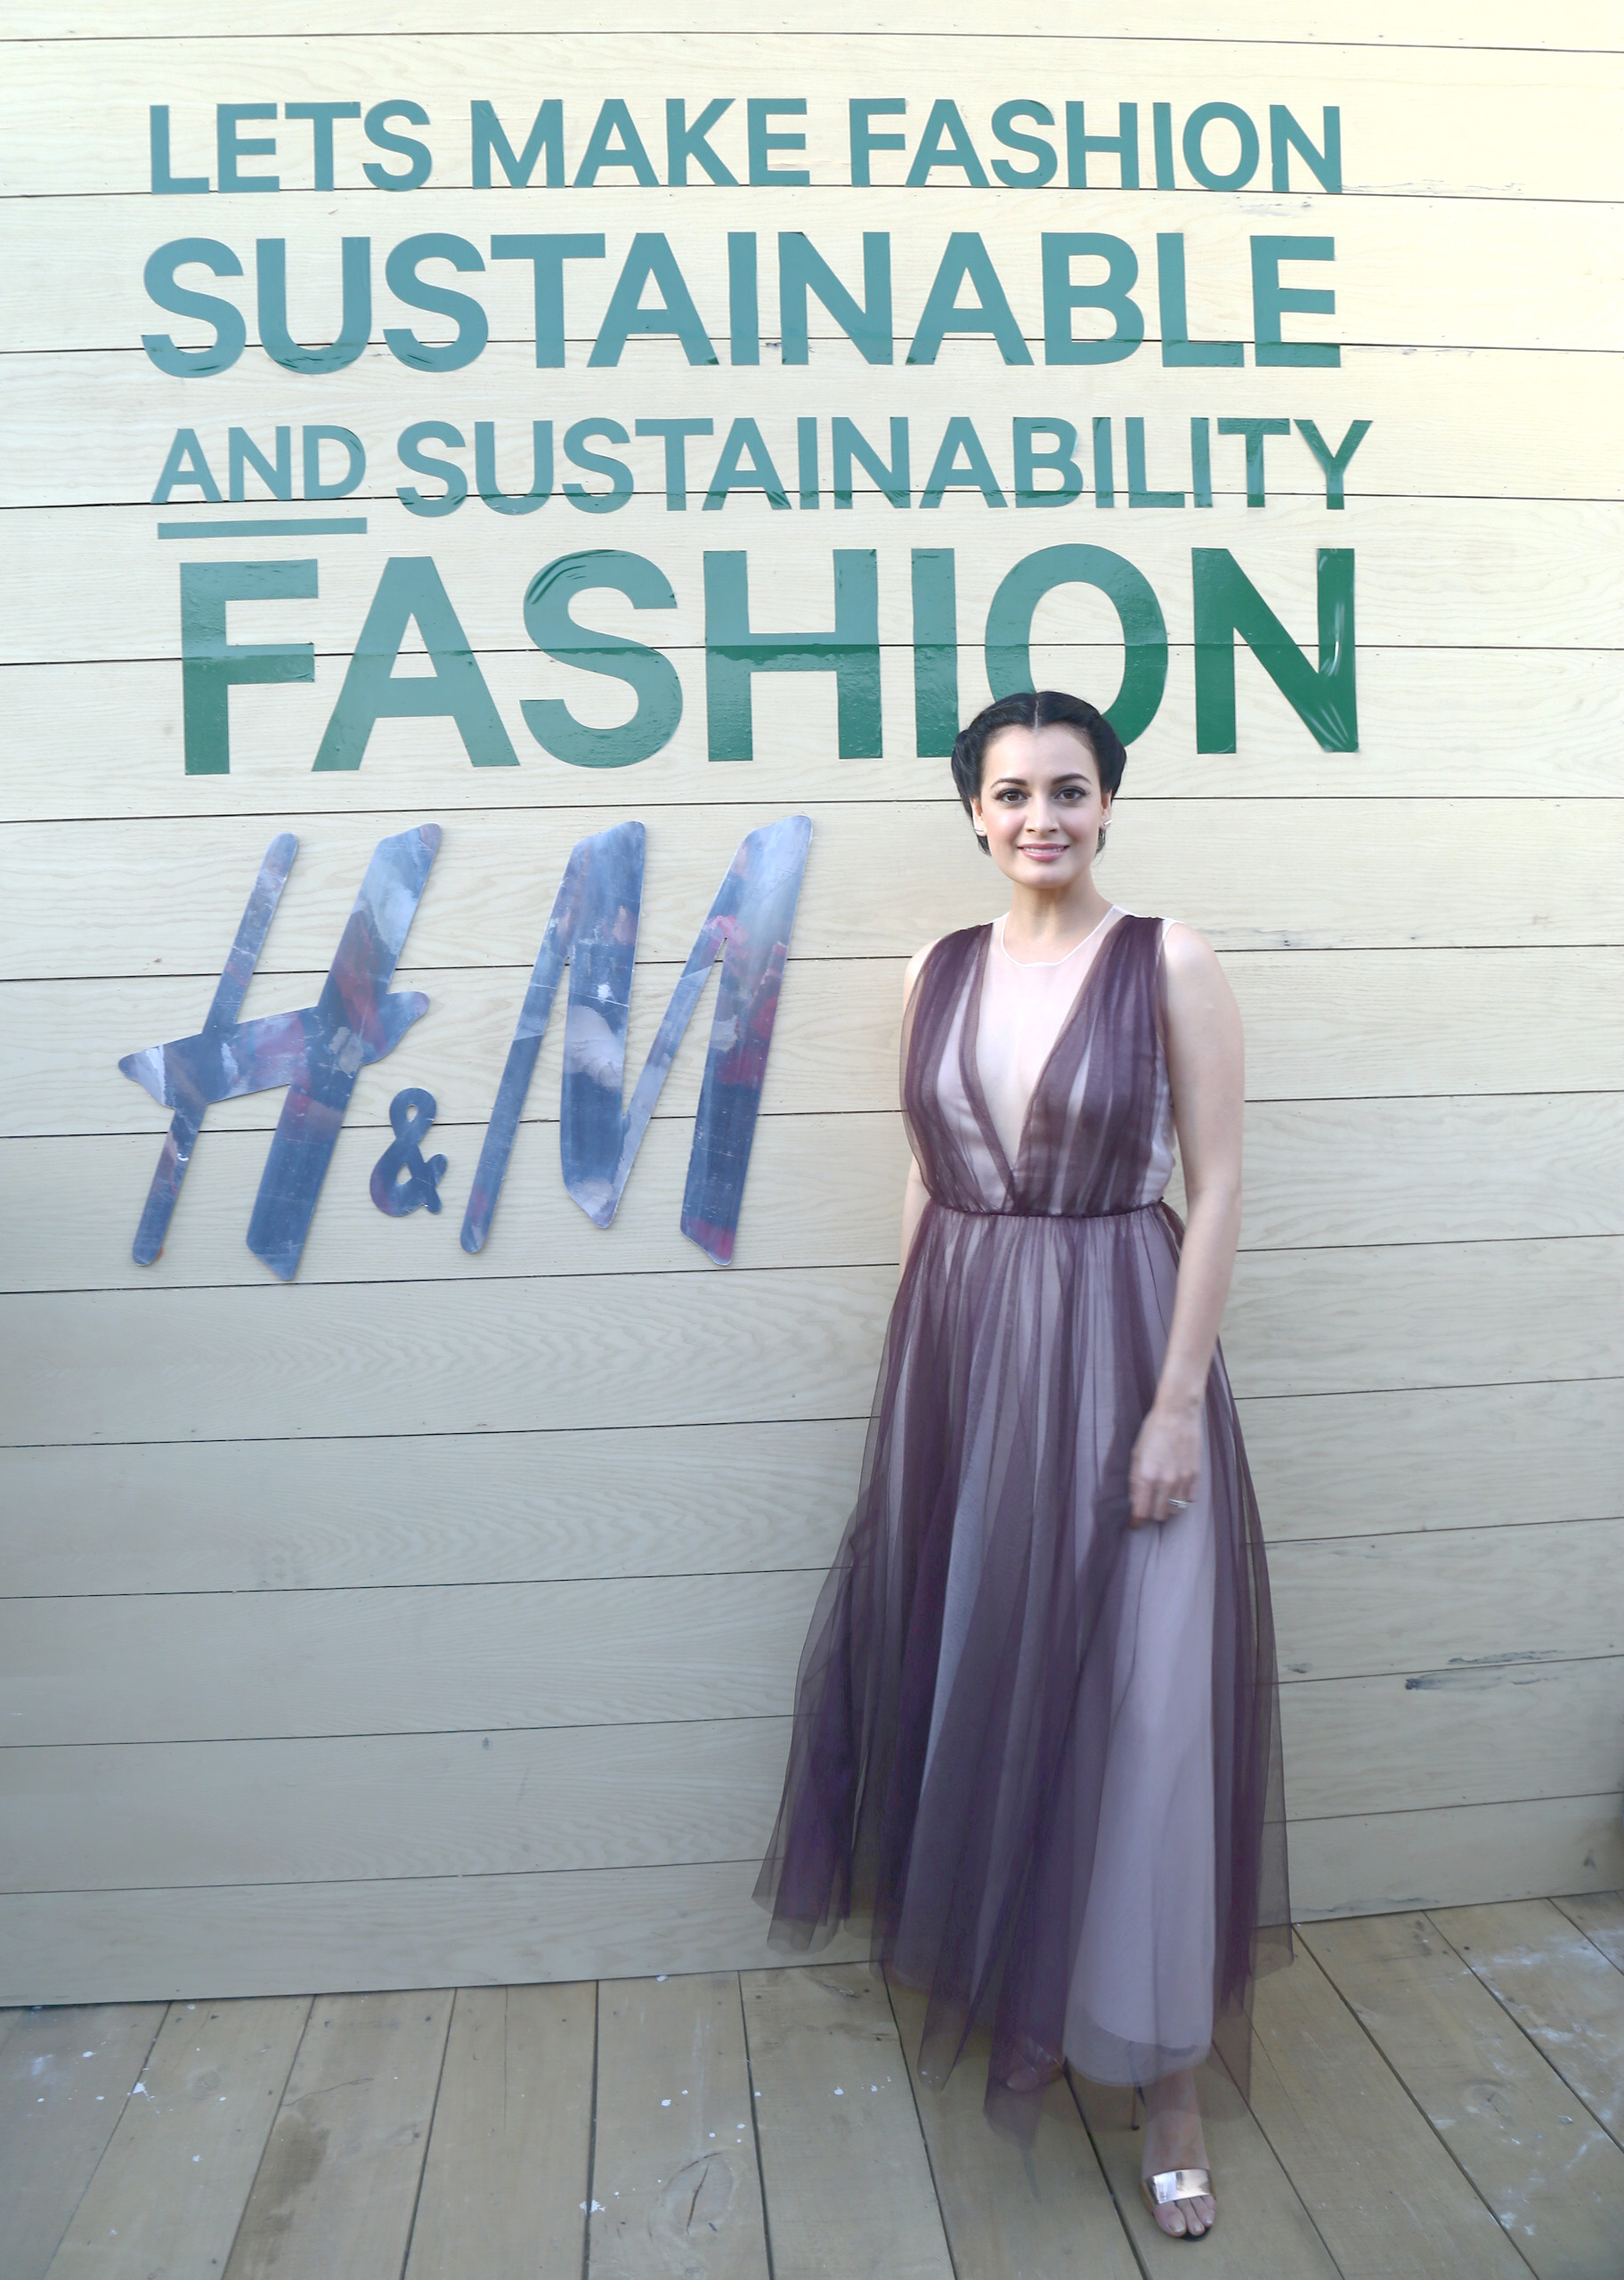 H&M PRESENTS SUSTAINABLE FASHION AT AIFW 2017 WITH THE FASHION ...